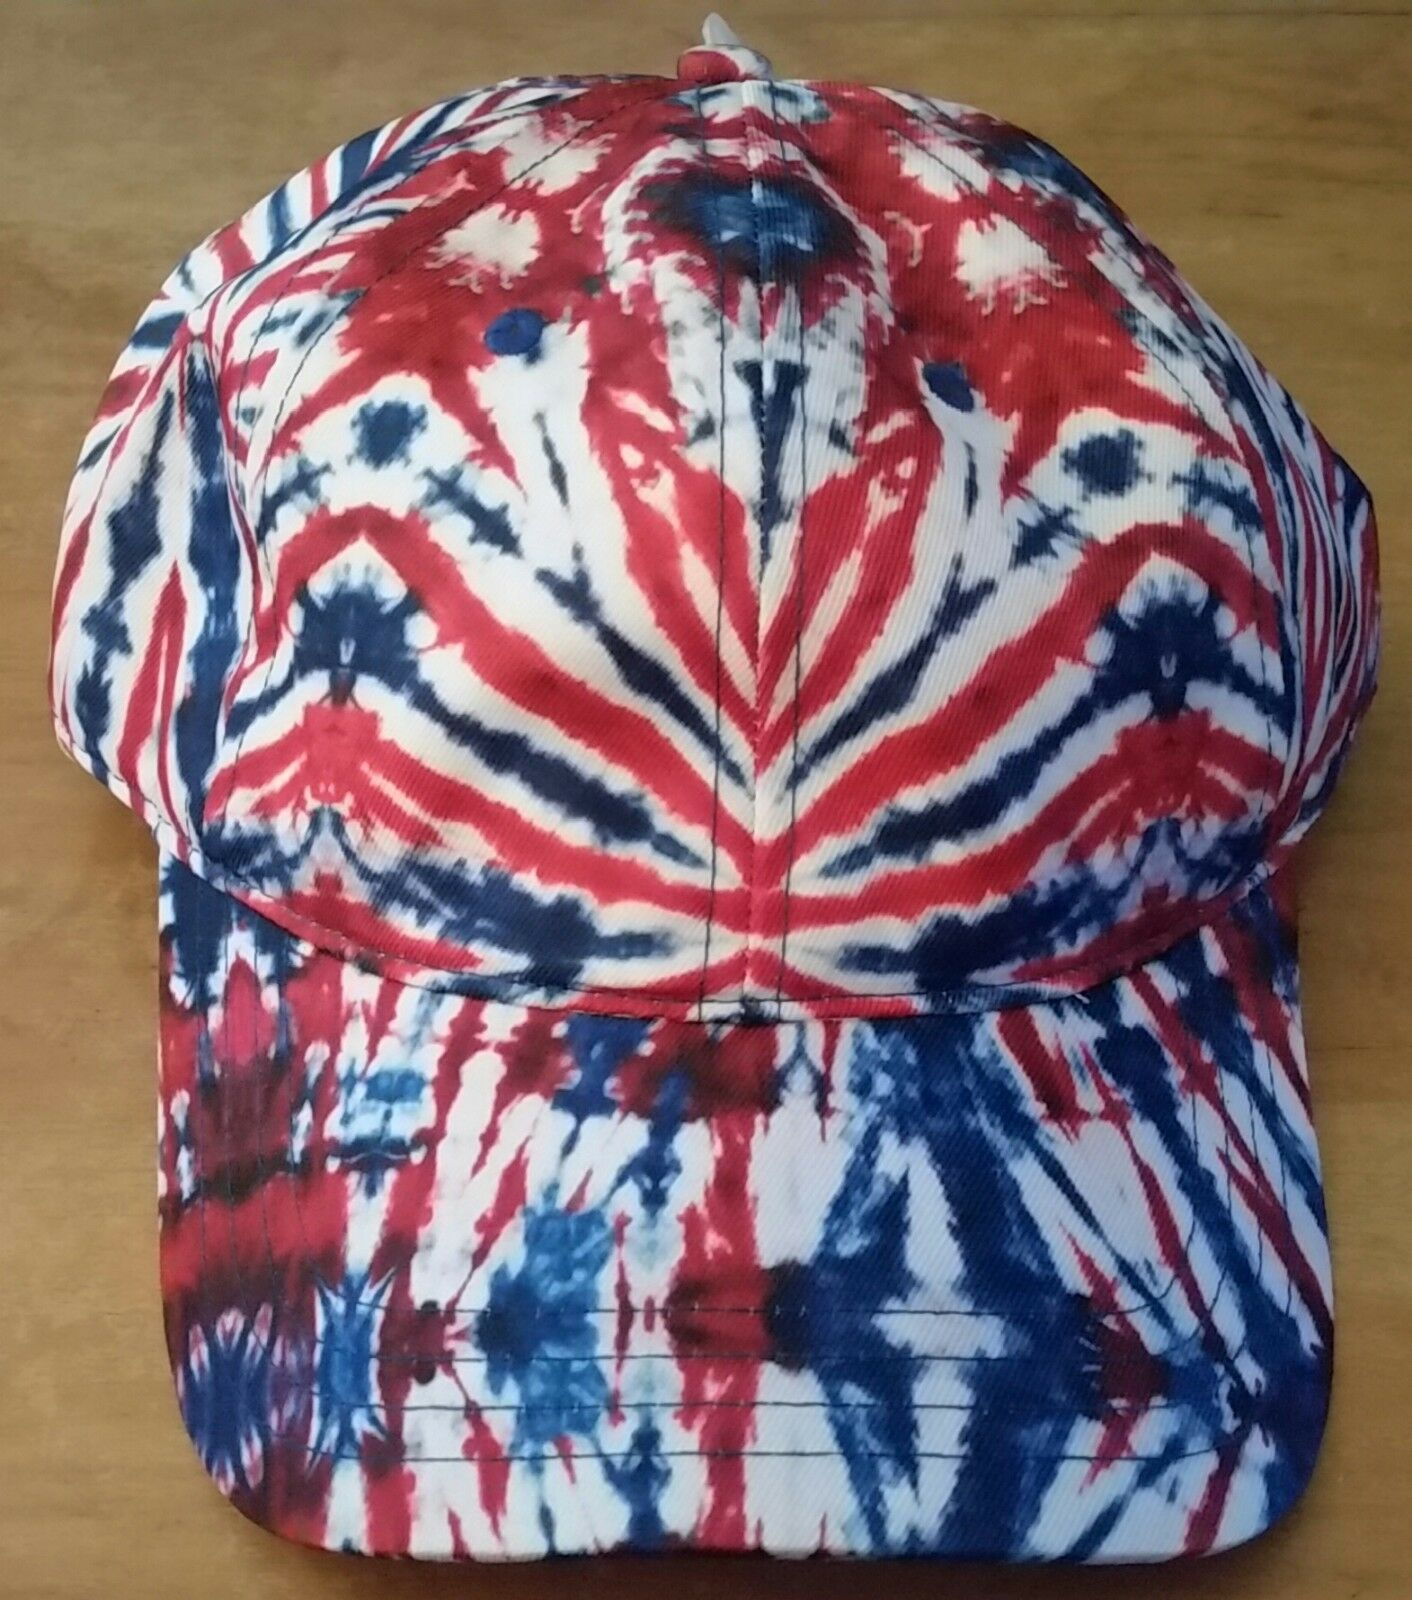 NWT Free Authority Tie Dye Red White Adjustable Blue Adjustable White Hat Cap 2dcca7